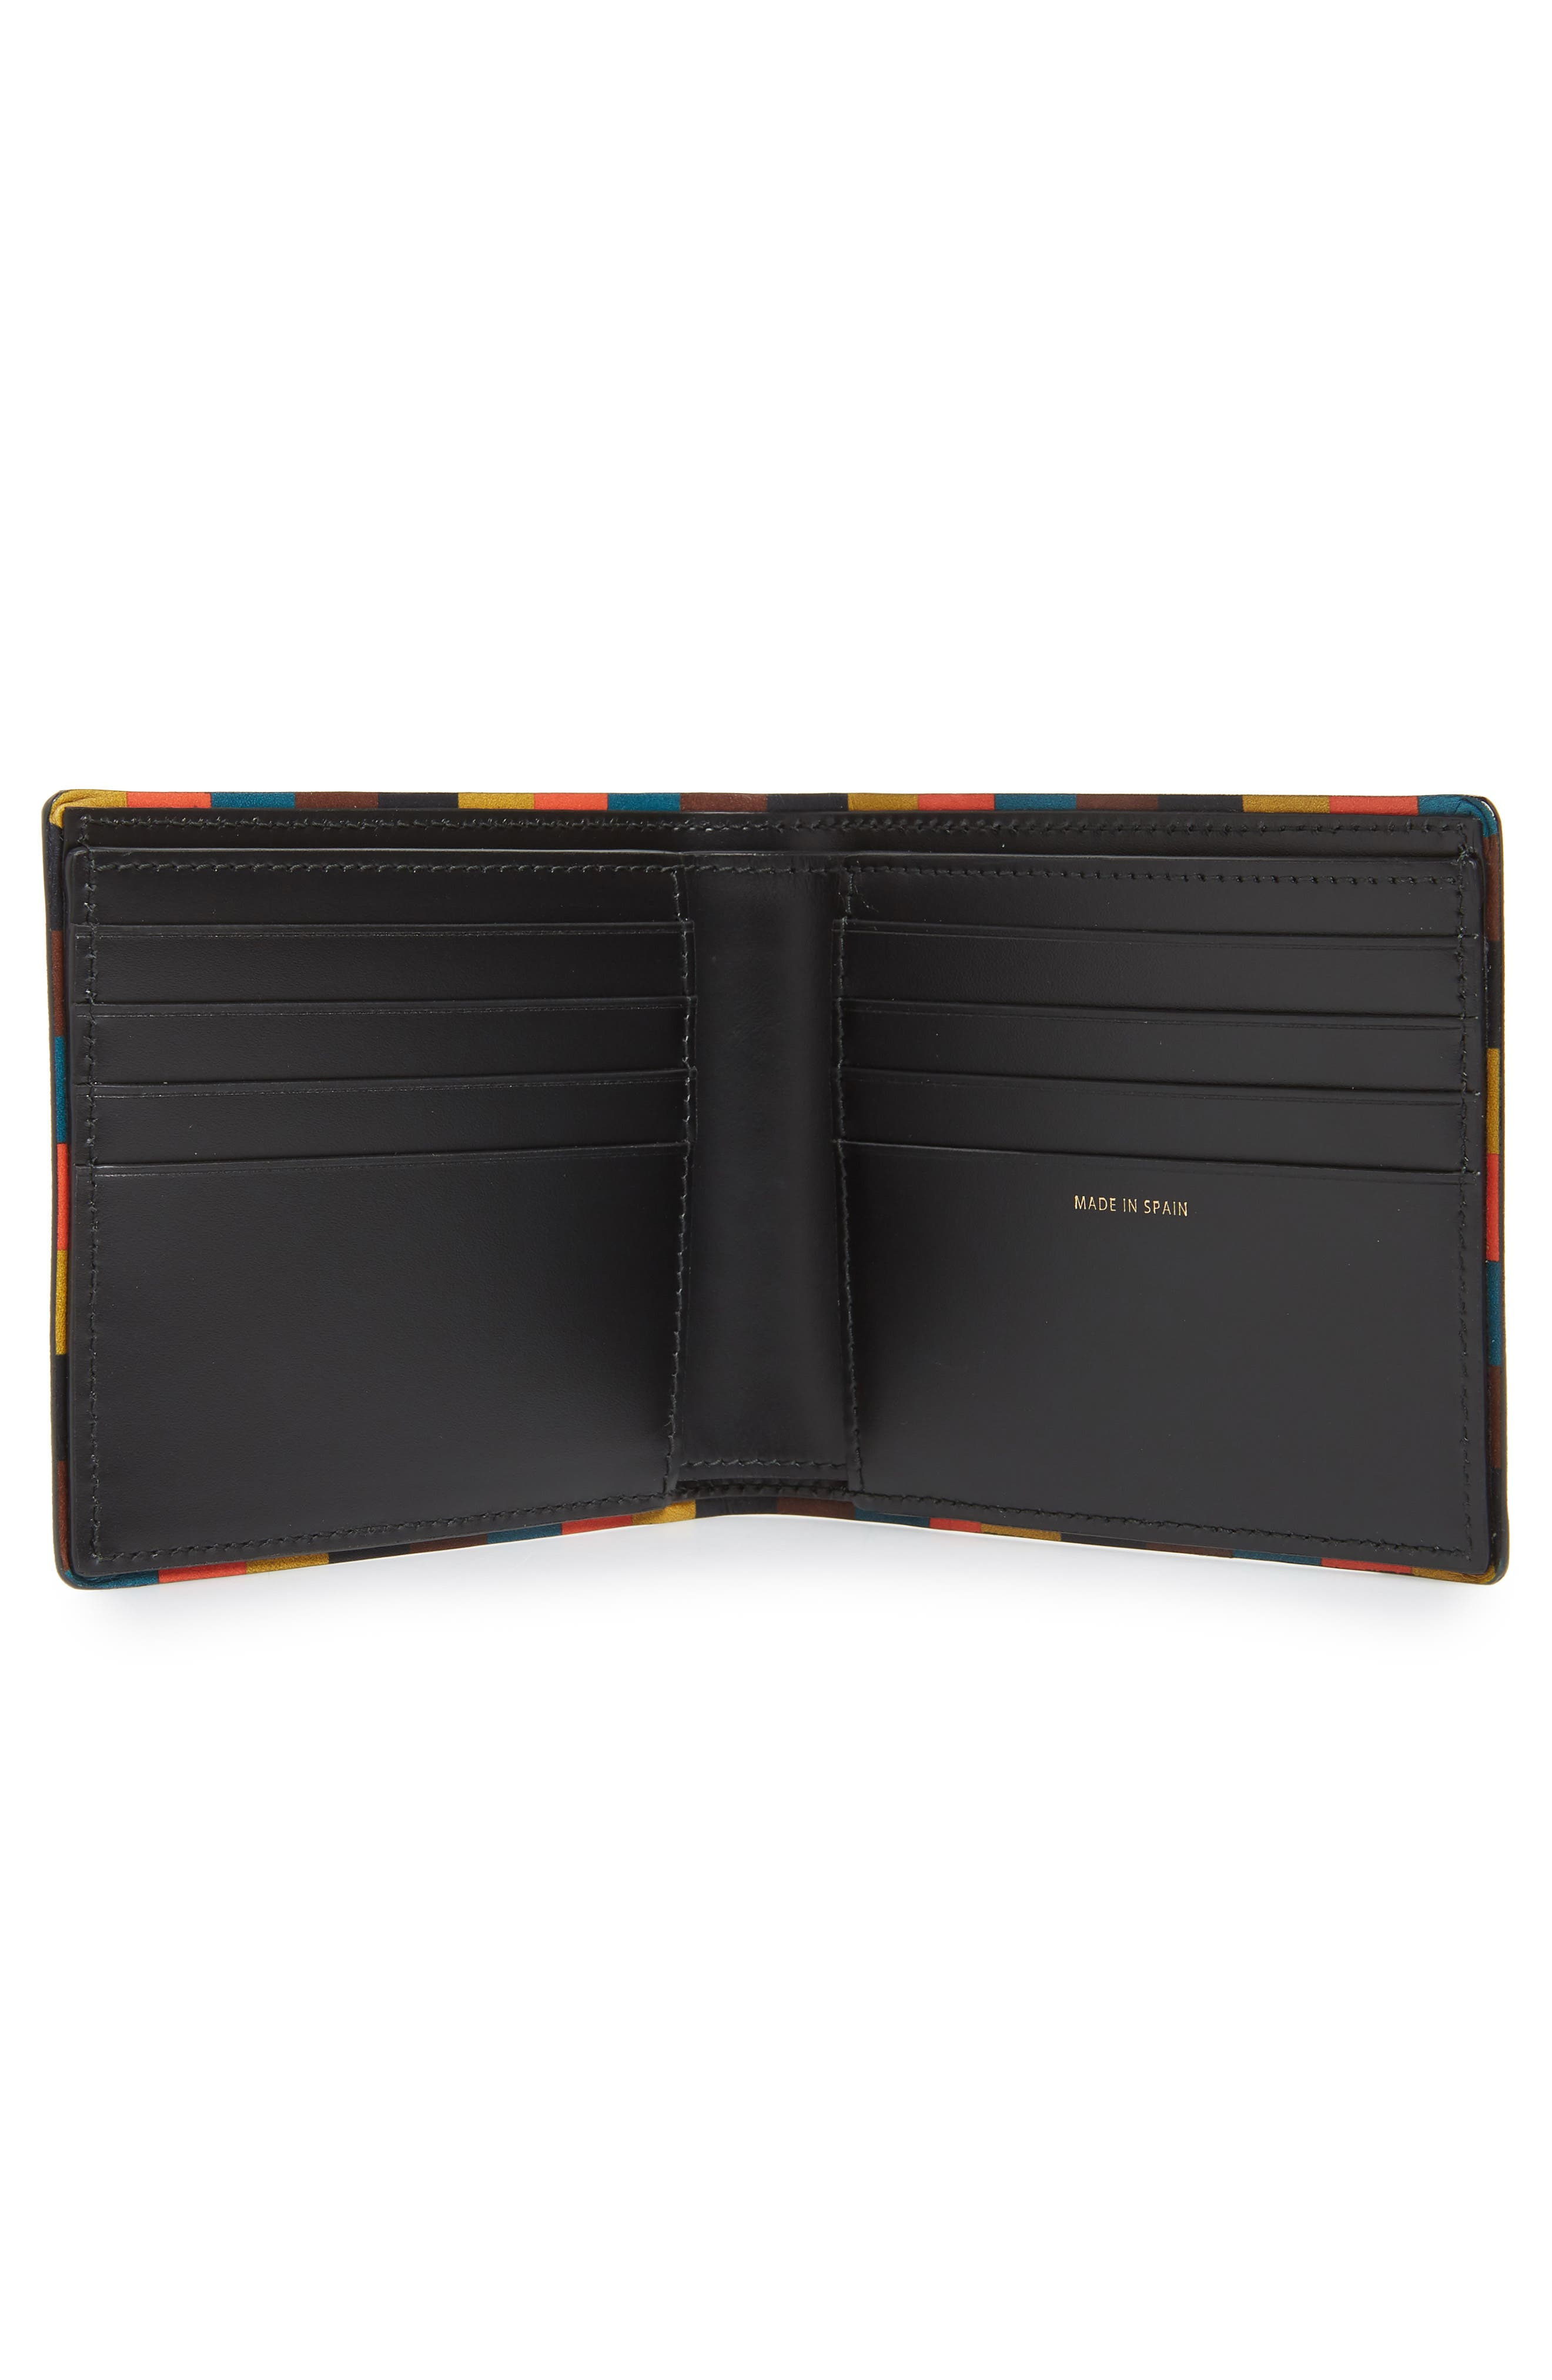 PAUL SMITH,                             Leather Billfold Wallet,                             Alternate thumbnail 2, color,                             001